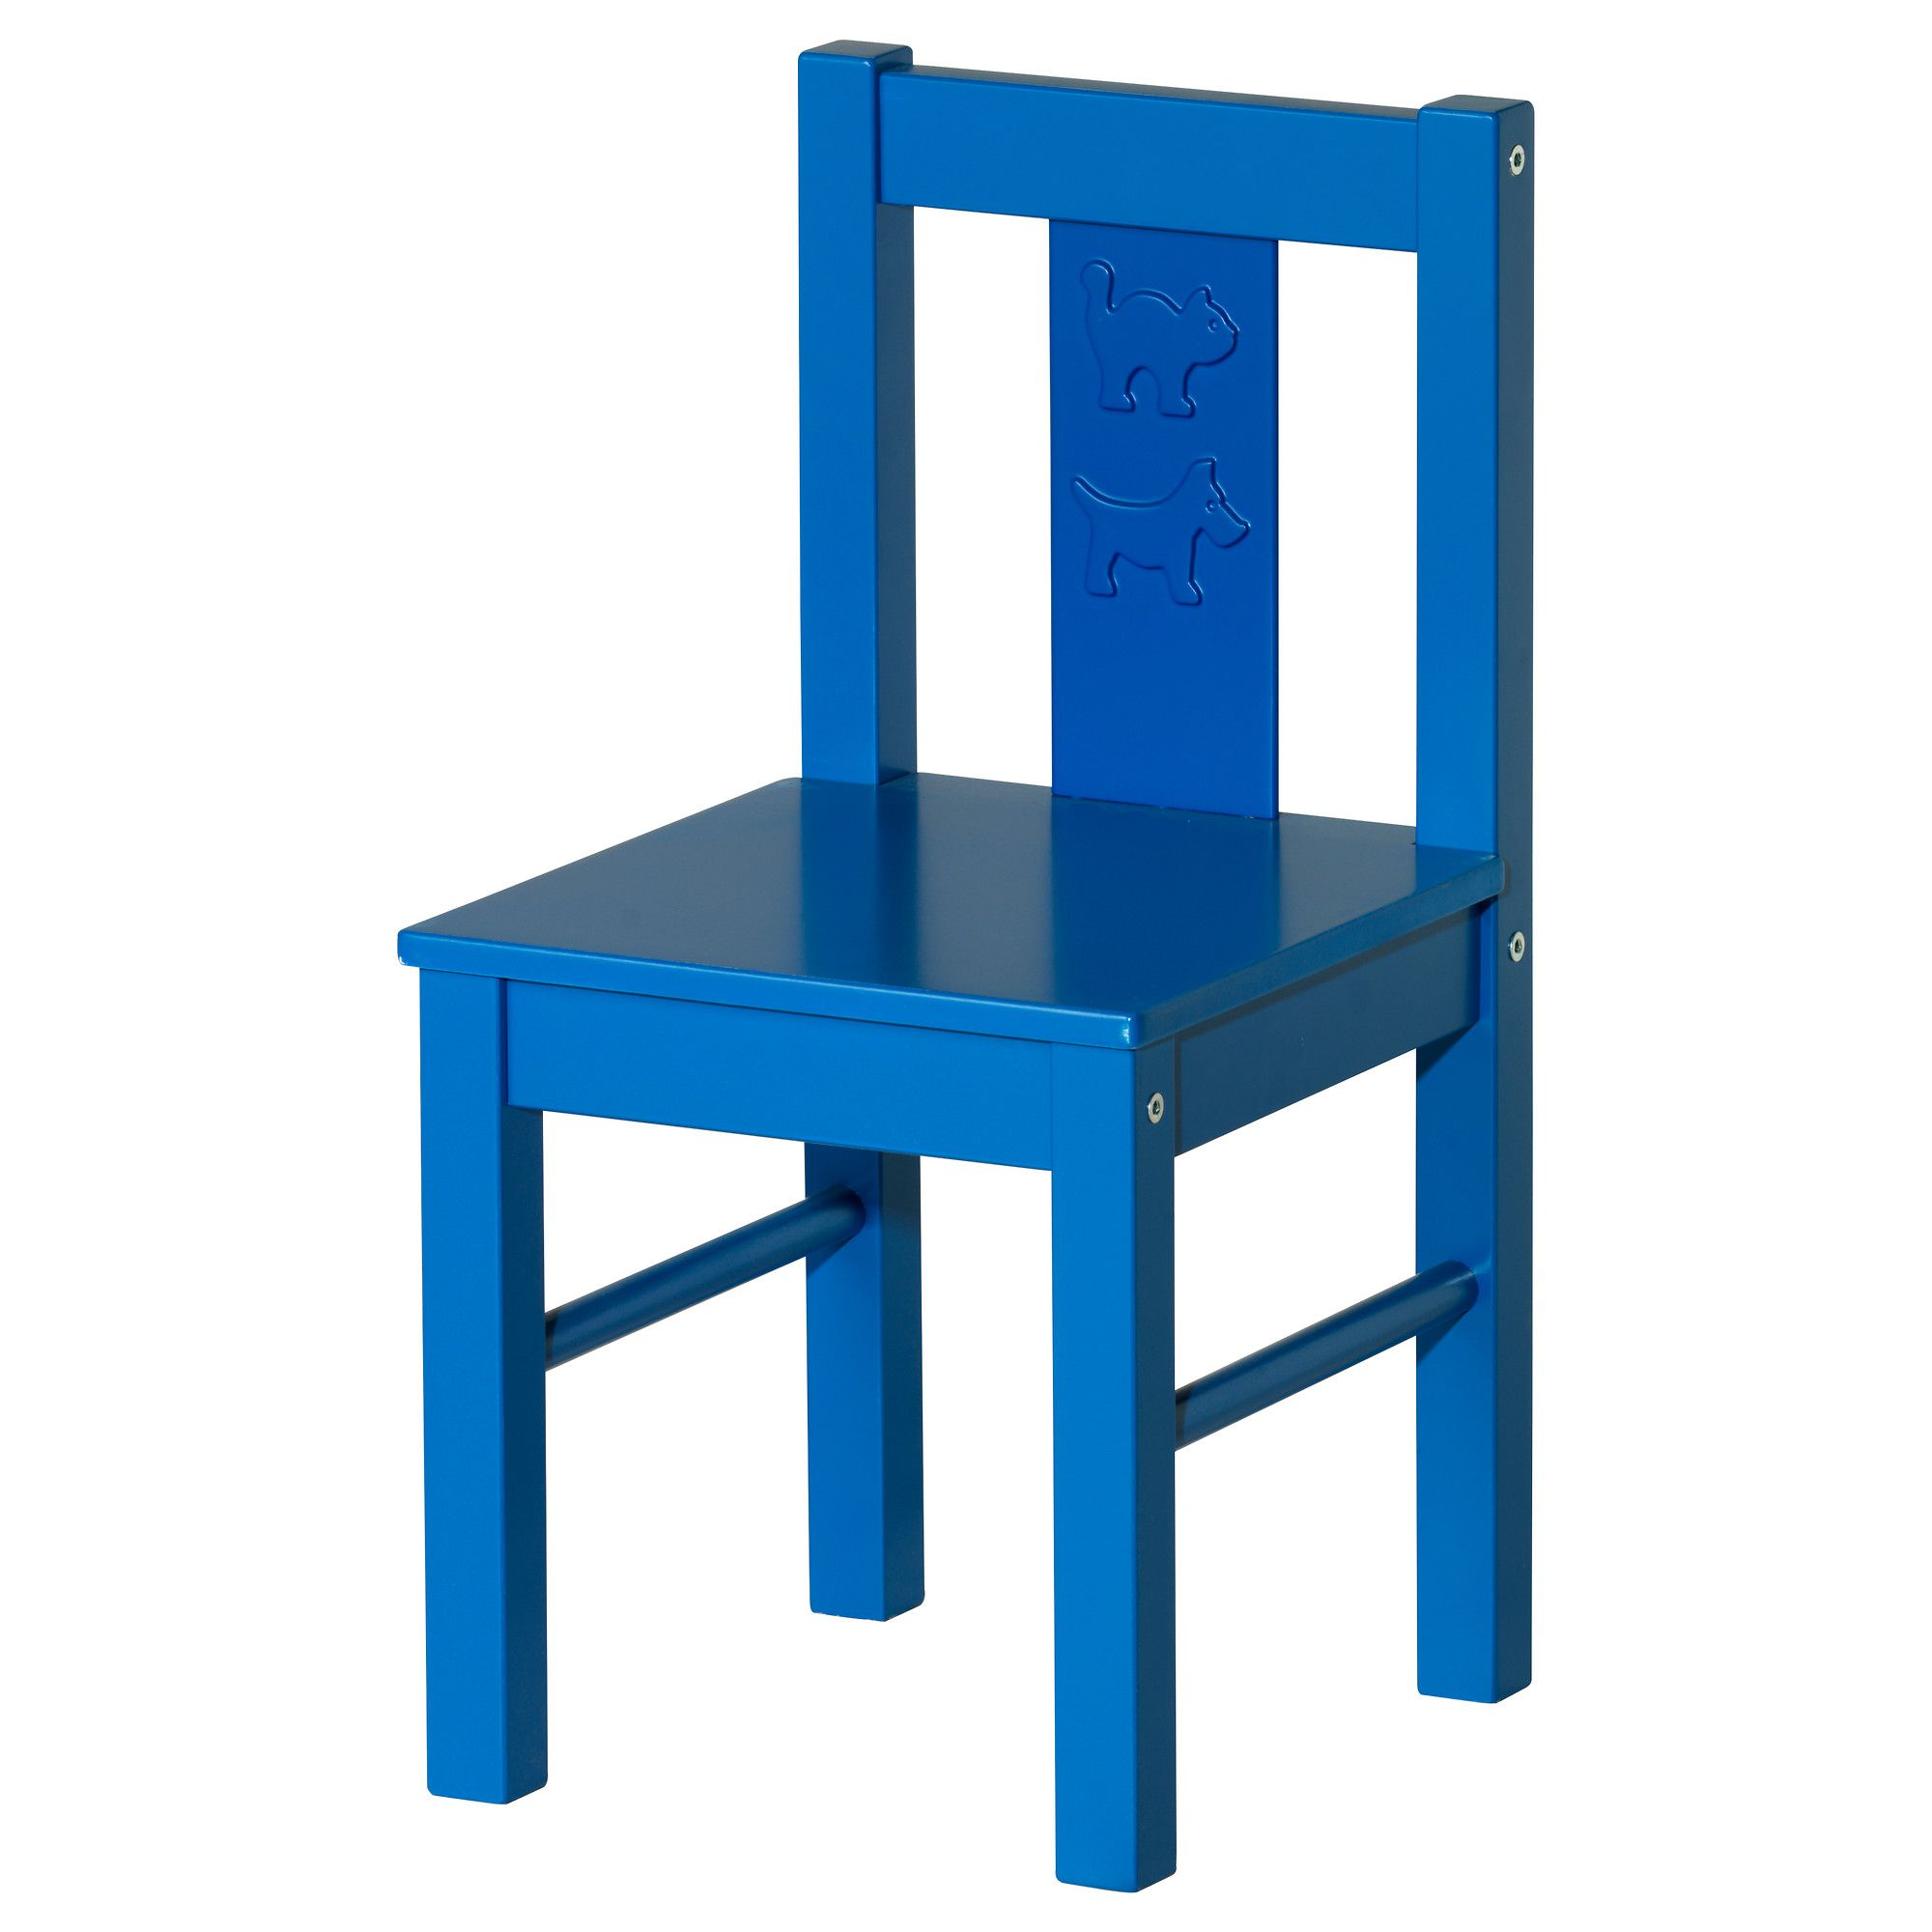 Ikea Nederland Interieur Online Bestellen Childrens Chairs Ikea Childrens Chair Kids Chairs